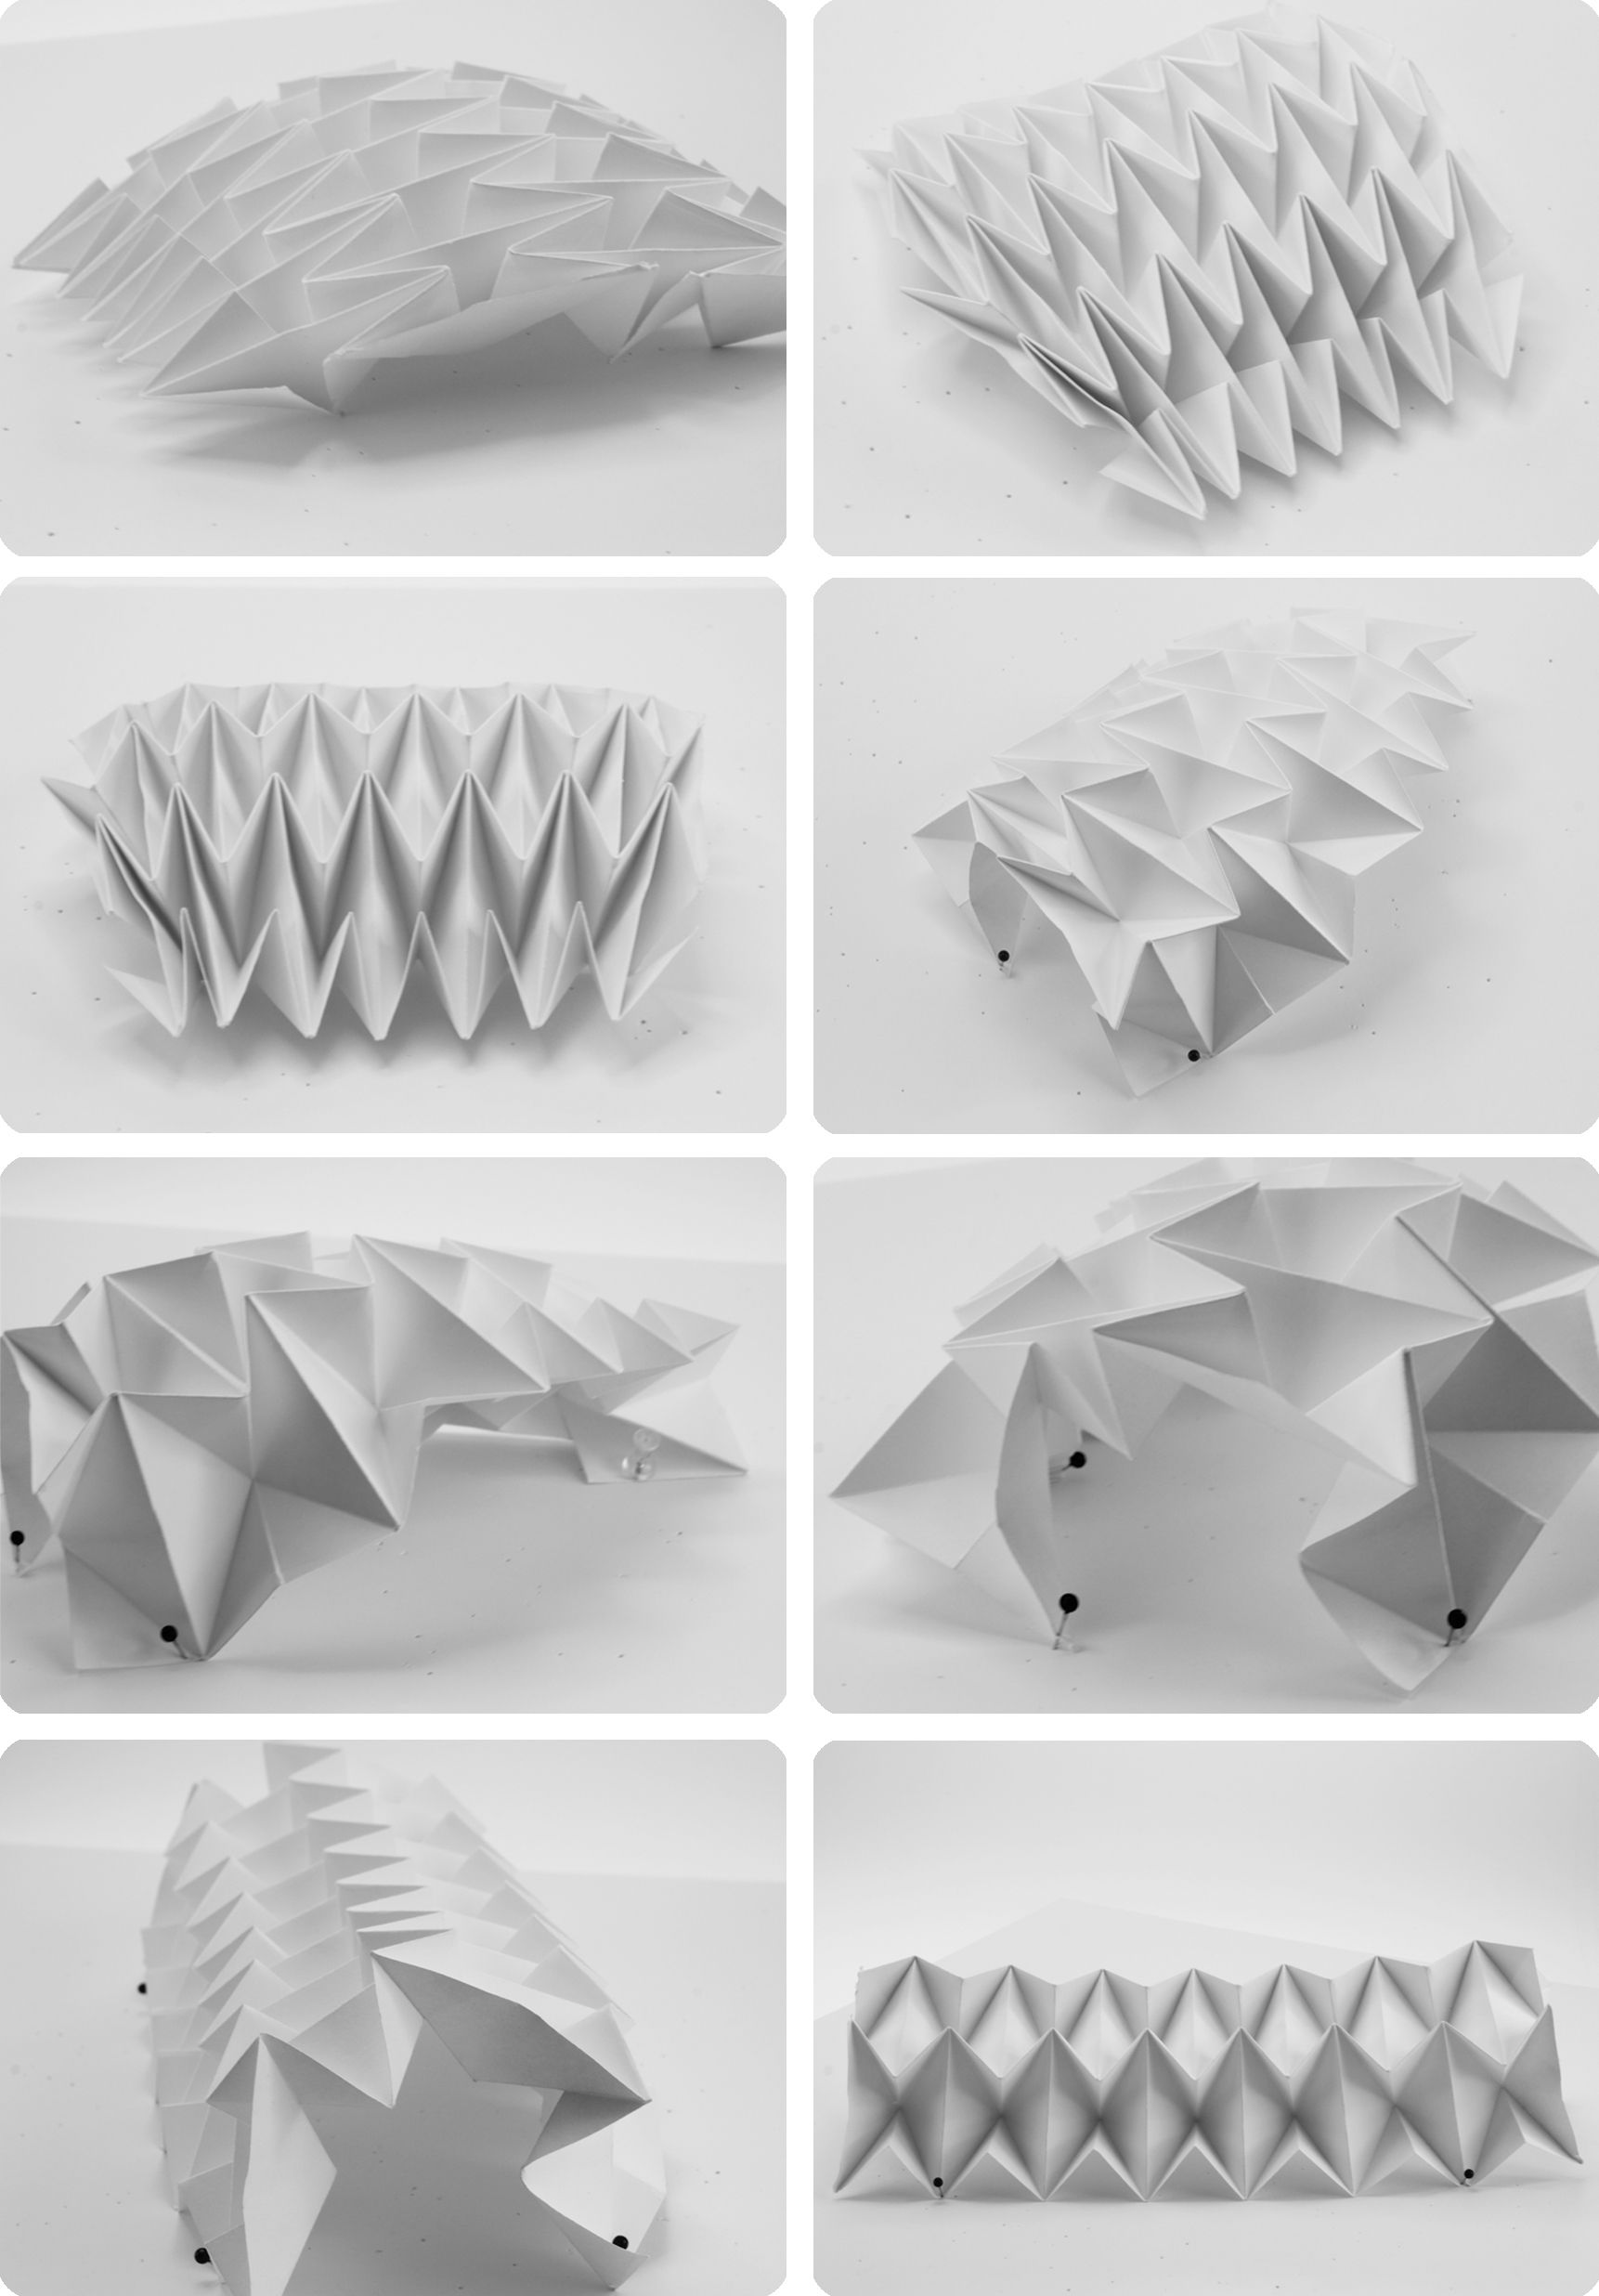 motif waterbomb, ancrages variés | cool stuff | pinterest | origami